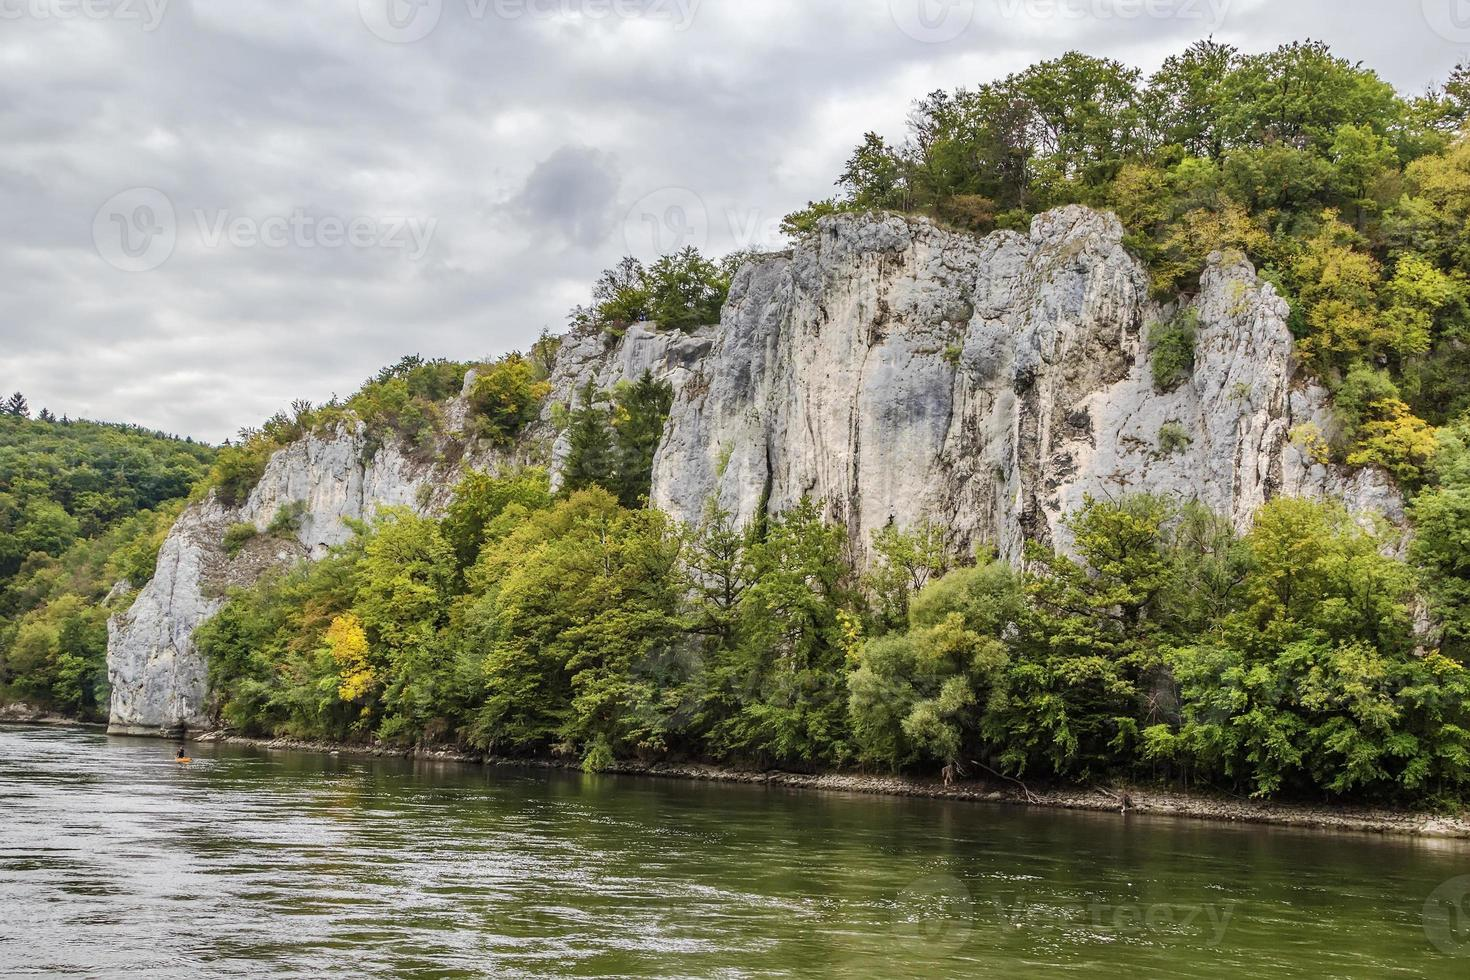 the rocky shores of the Danube, Germany photo